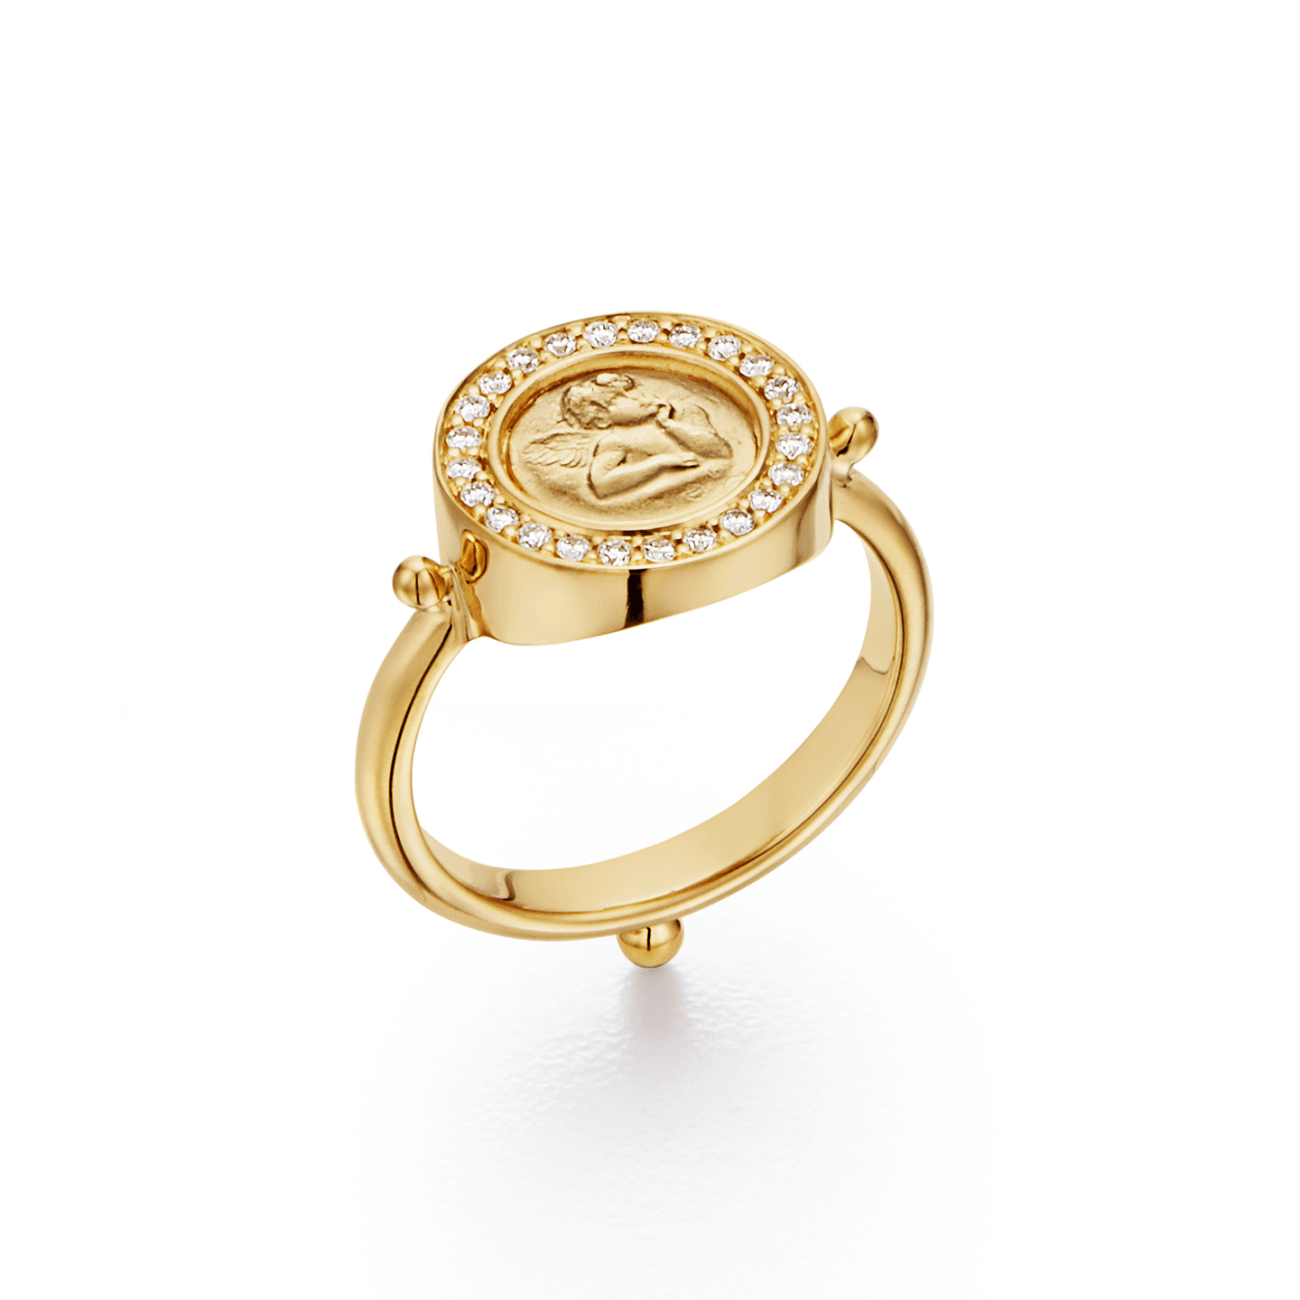 Temple St Clair Jewelry - 18K Angel Ring in diamond pav̩ | Manfredi Jewels